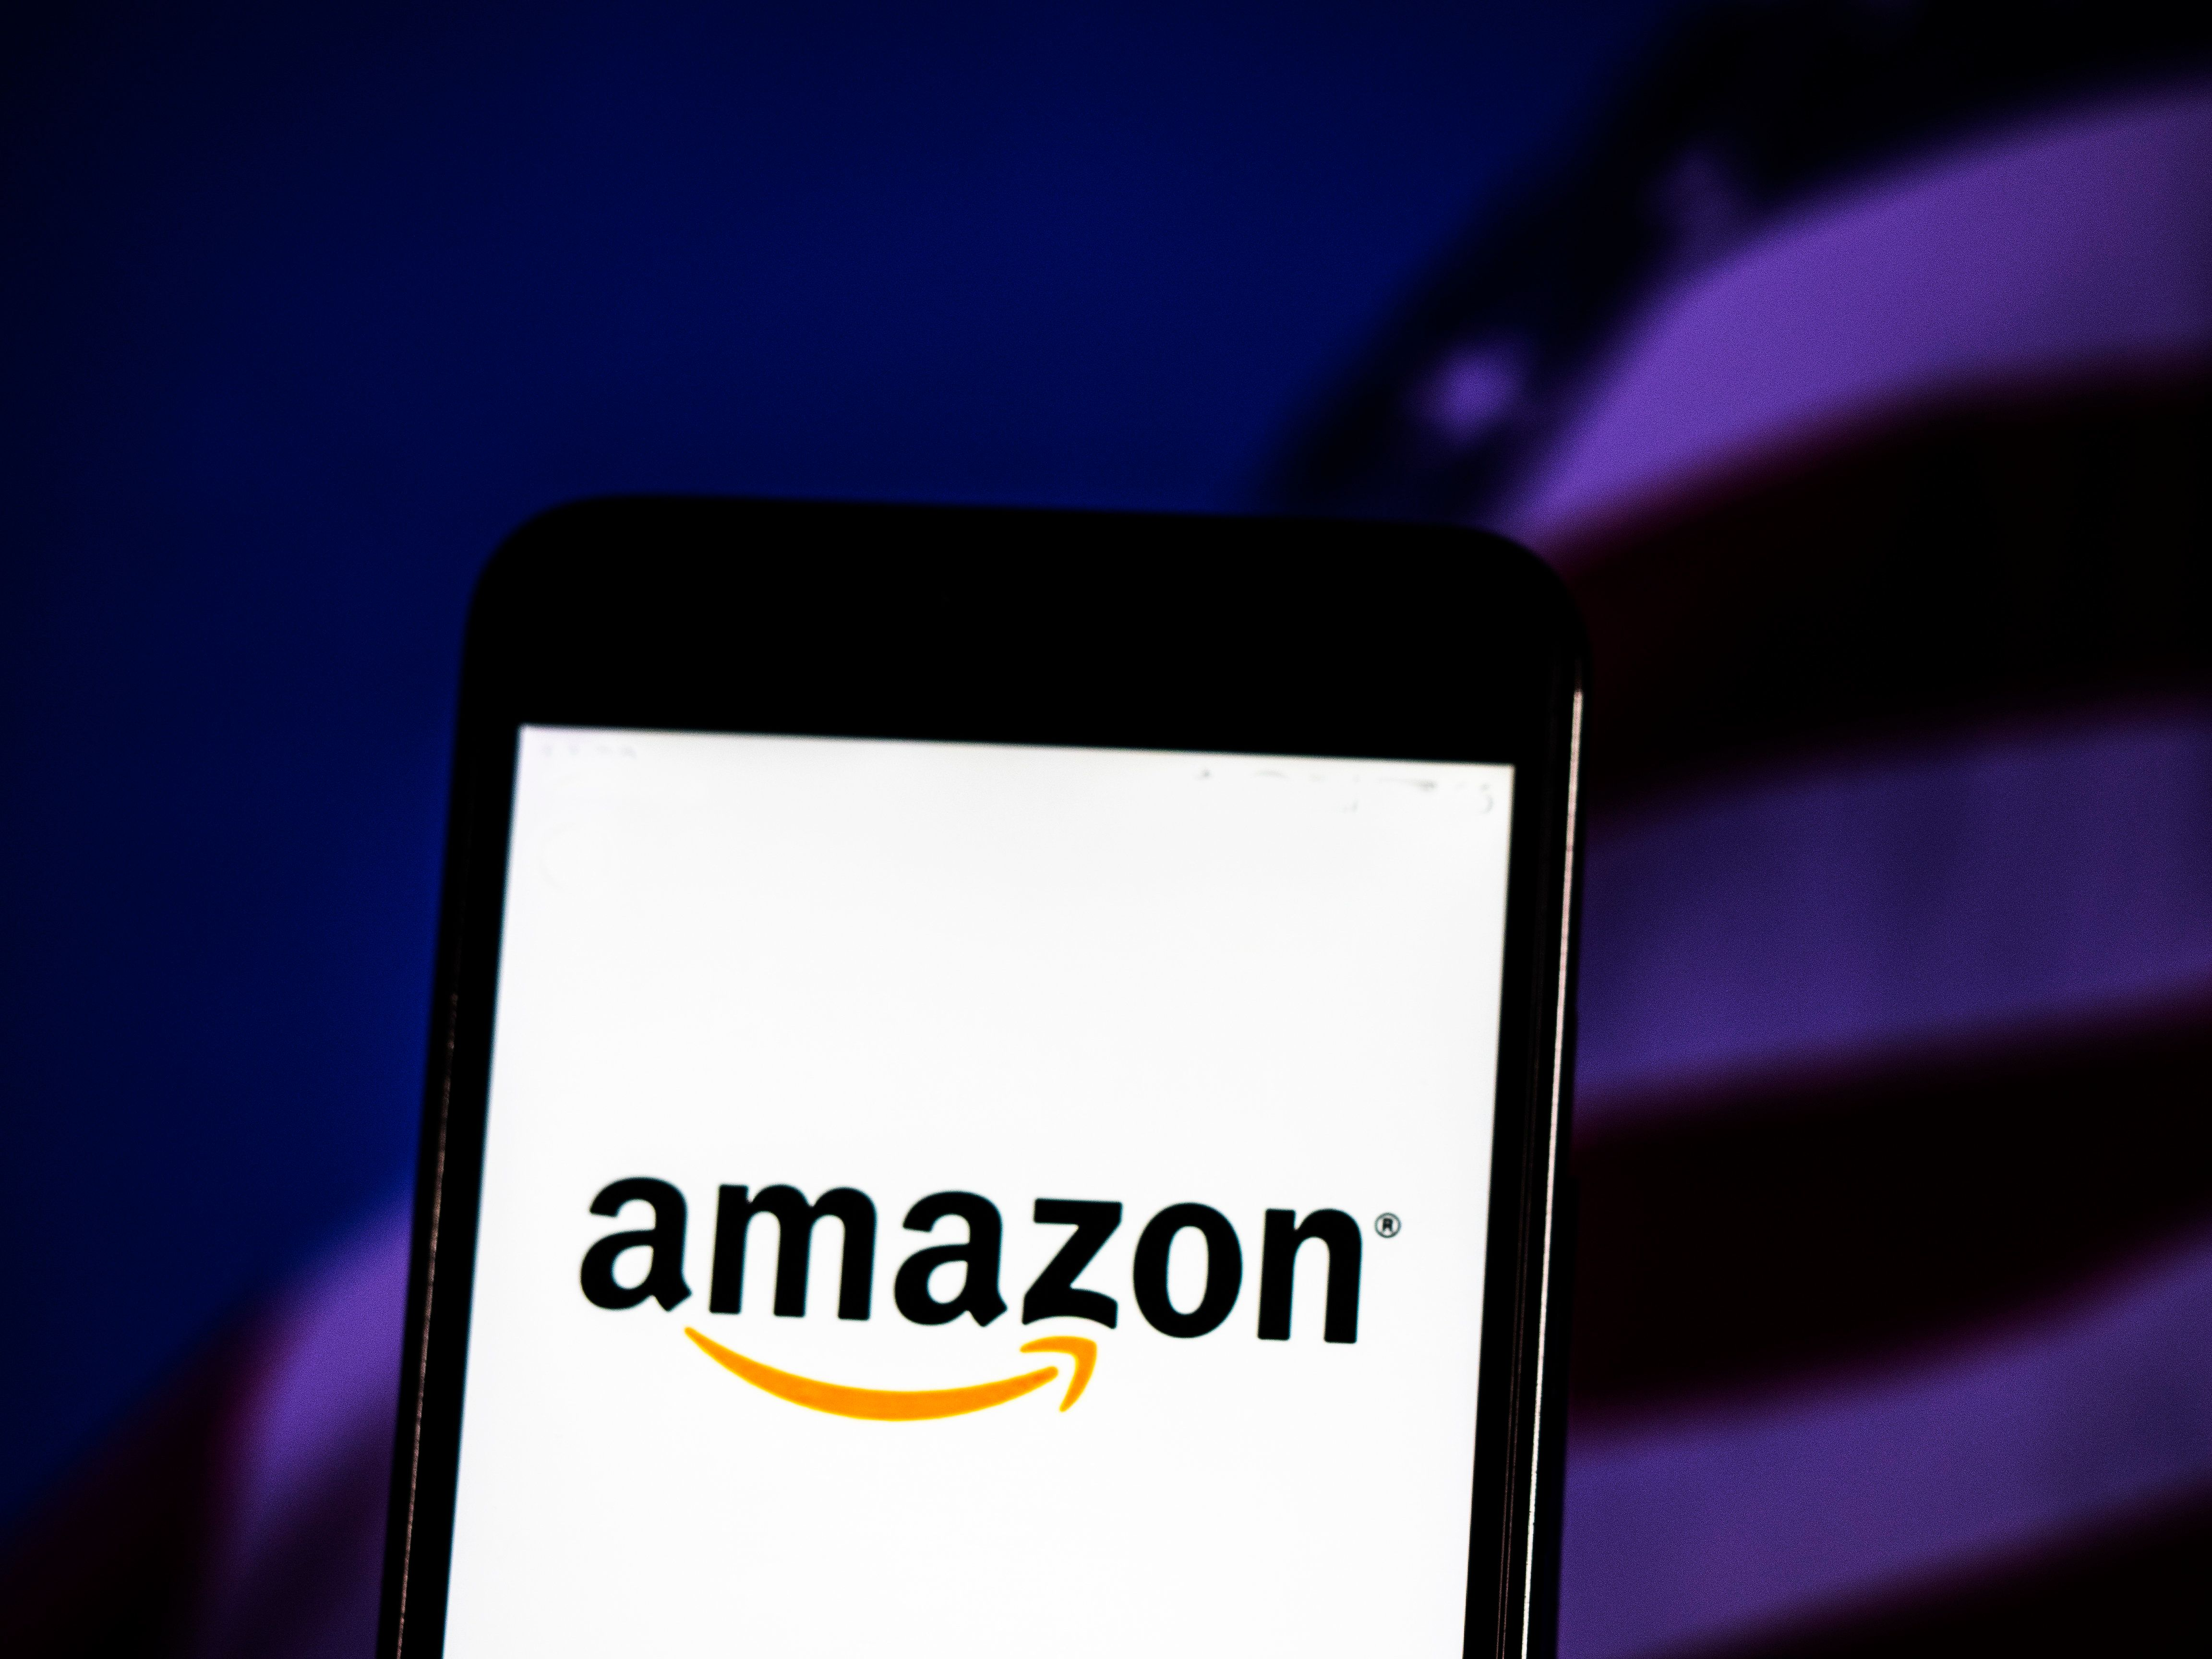 KIEV, UKRAINE - 2018/11/06: The Amazon logo seen displayed on a smart phone with a background of a stock market shedle. Amazon.com, Inc., doing business as Amazon, is an American electronic commerce and cloud computing company based in Seattle, Washington. (Photo by Igor Golovniov/SOPA Images/LightRocket via Getty Images)